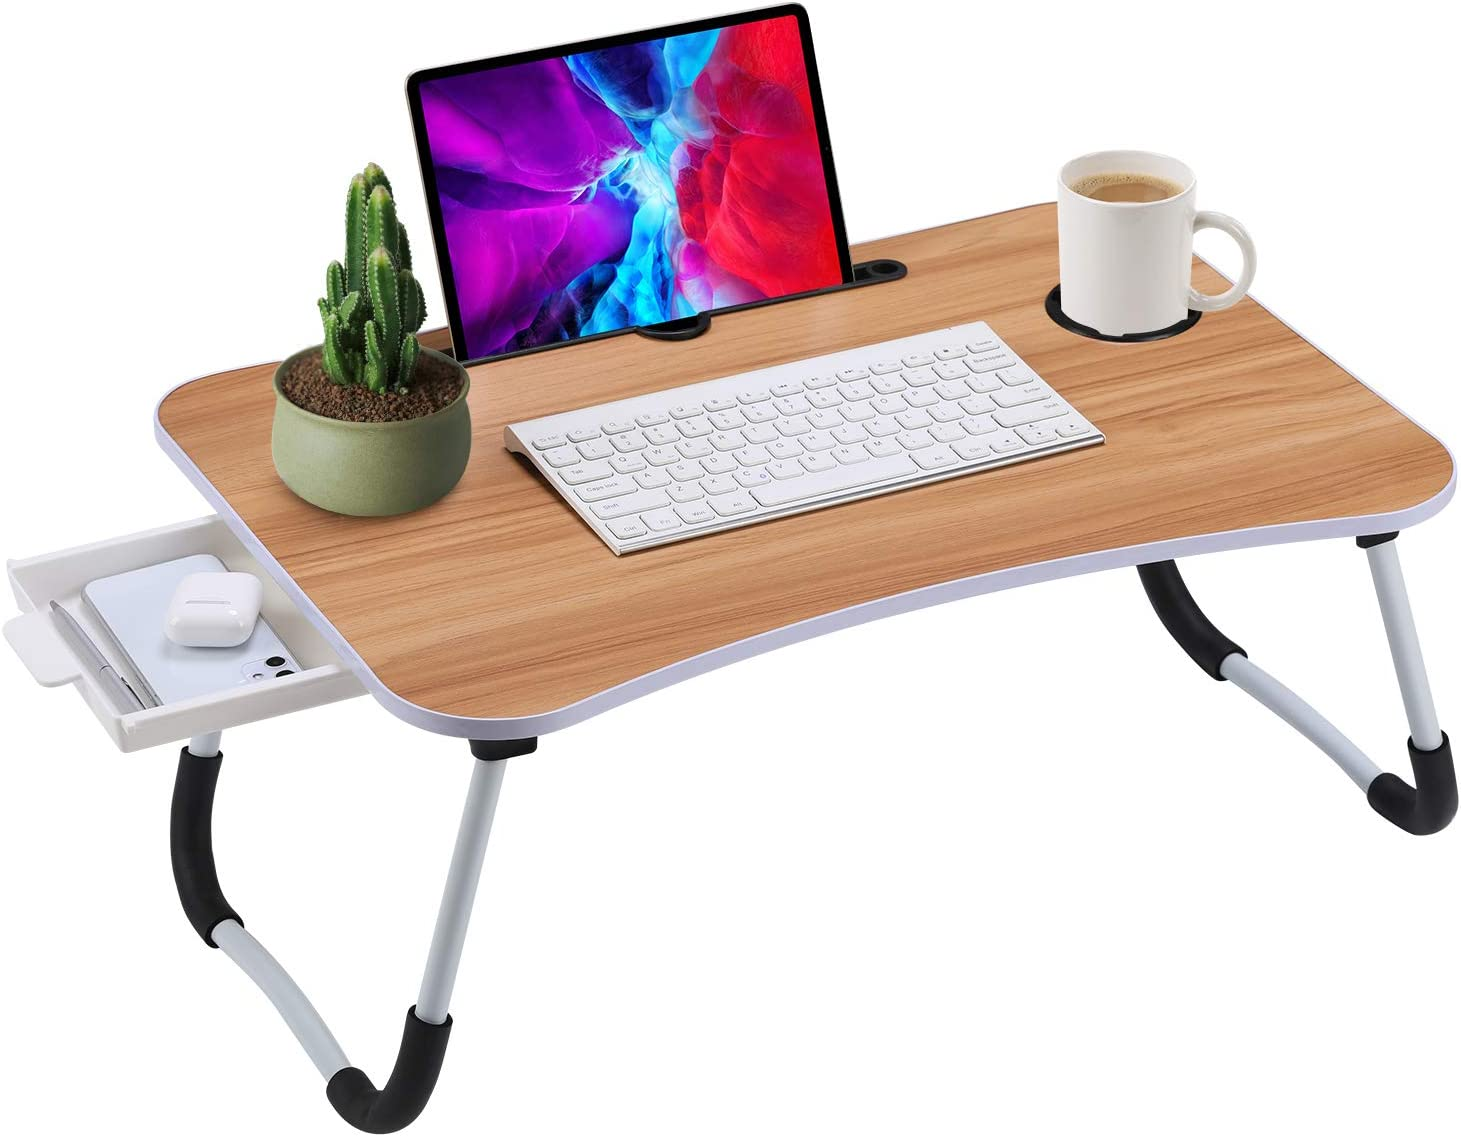 Foldable Laptop Wood Bed Desk Stand Storage Drawer , Serving Tray Dining Table Slot, Notebook Holder, Bed Tray Laptop Desk Eating Breakfast, Watching Movie Couch/Sofa/Floor